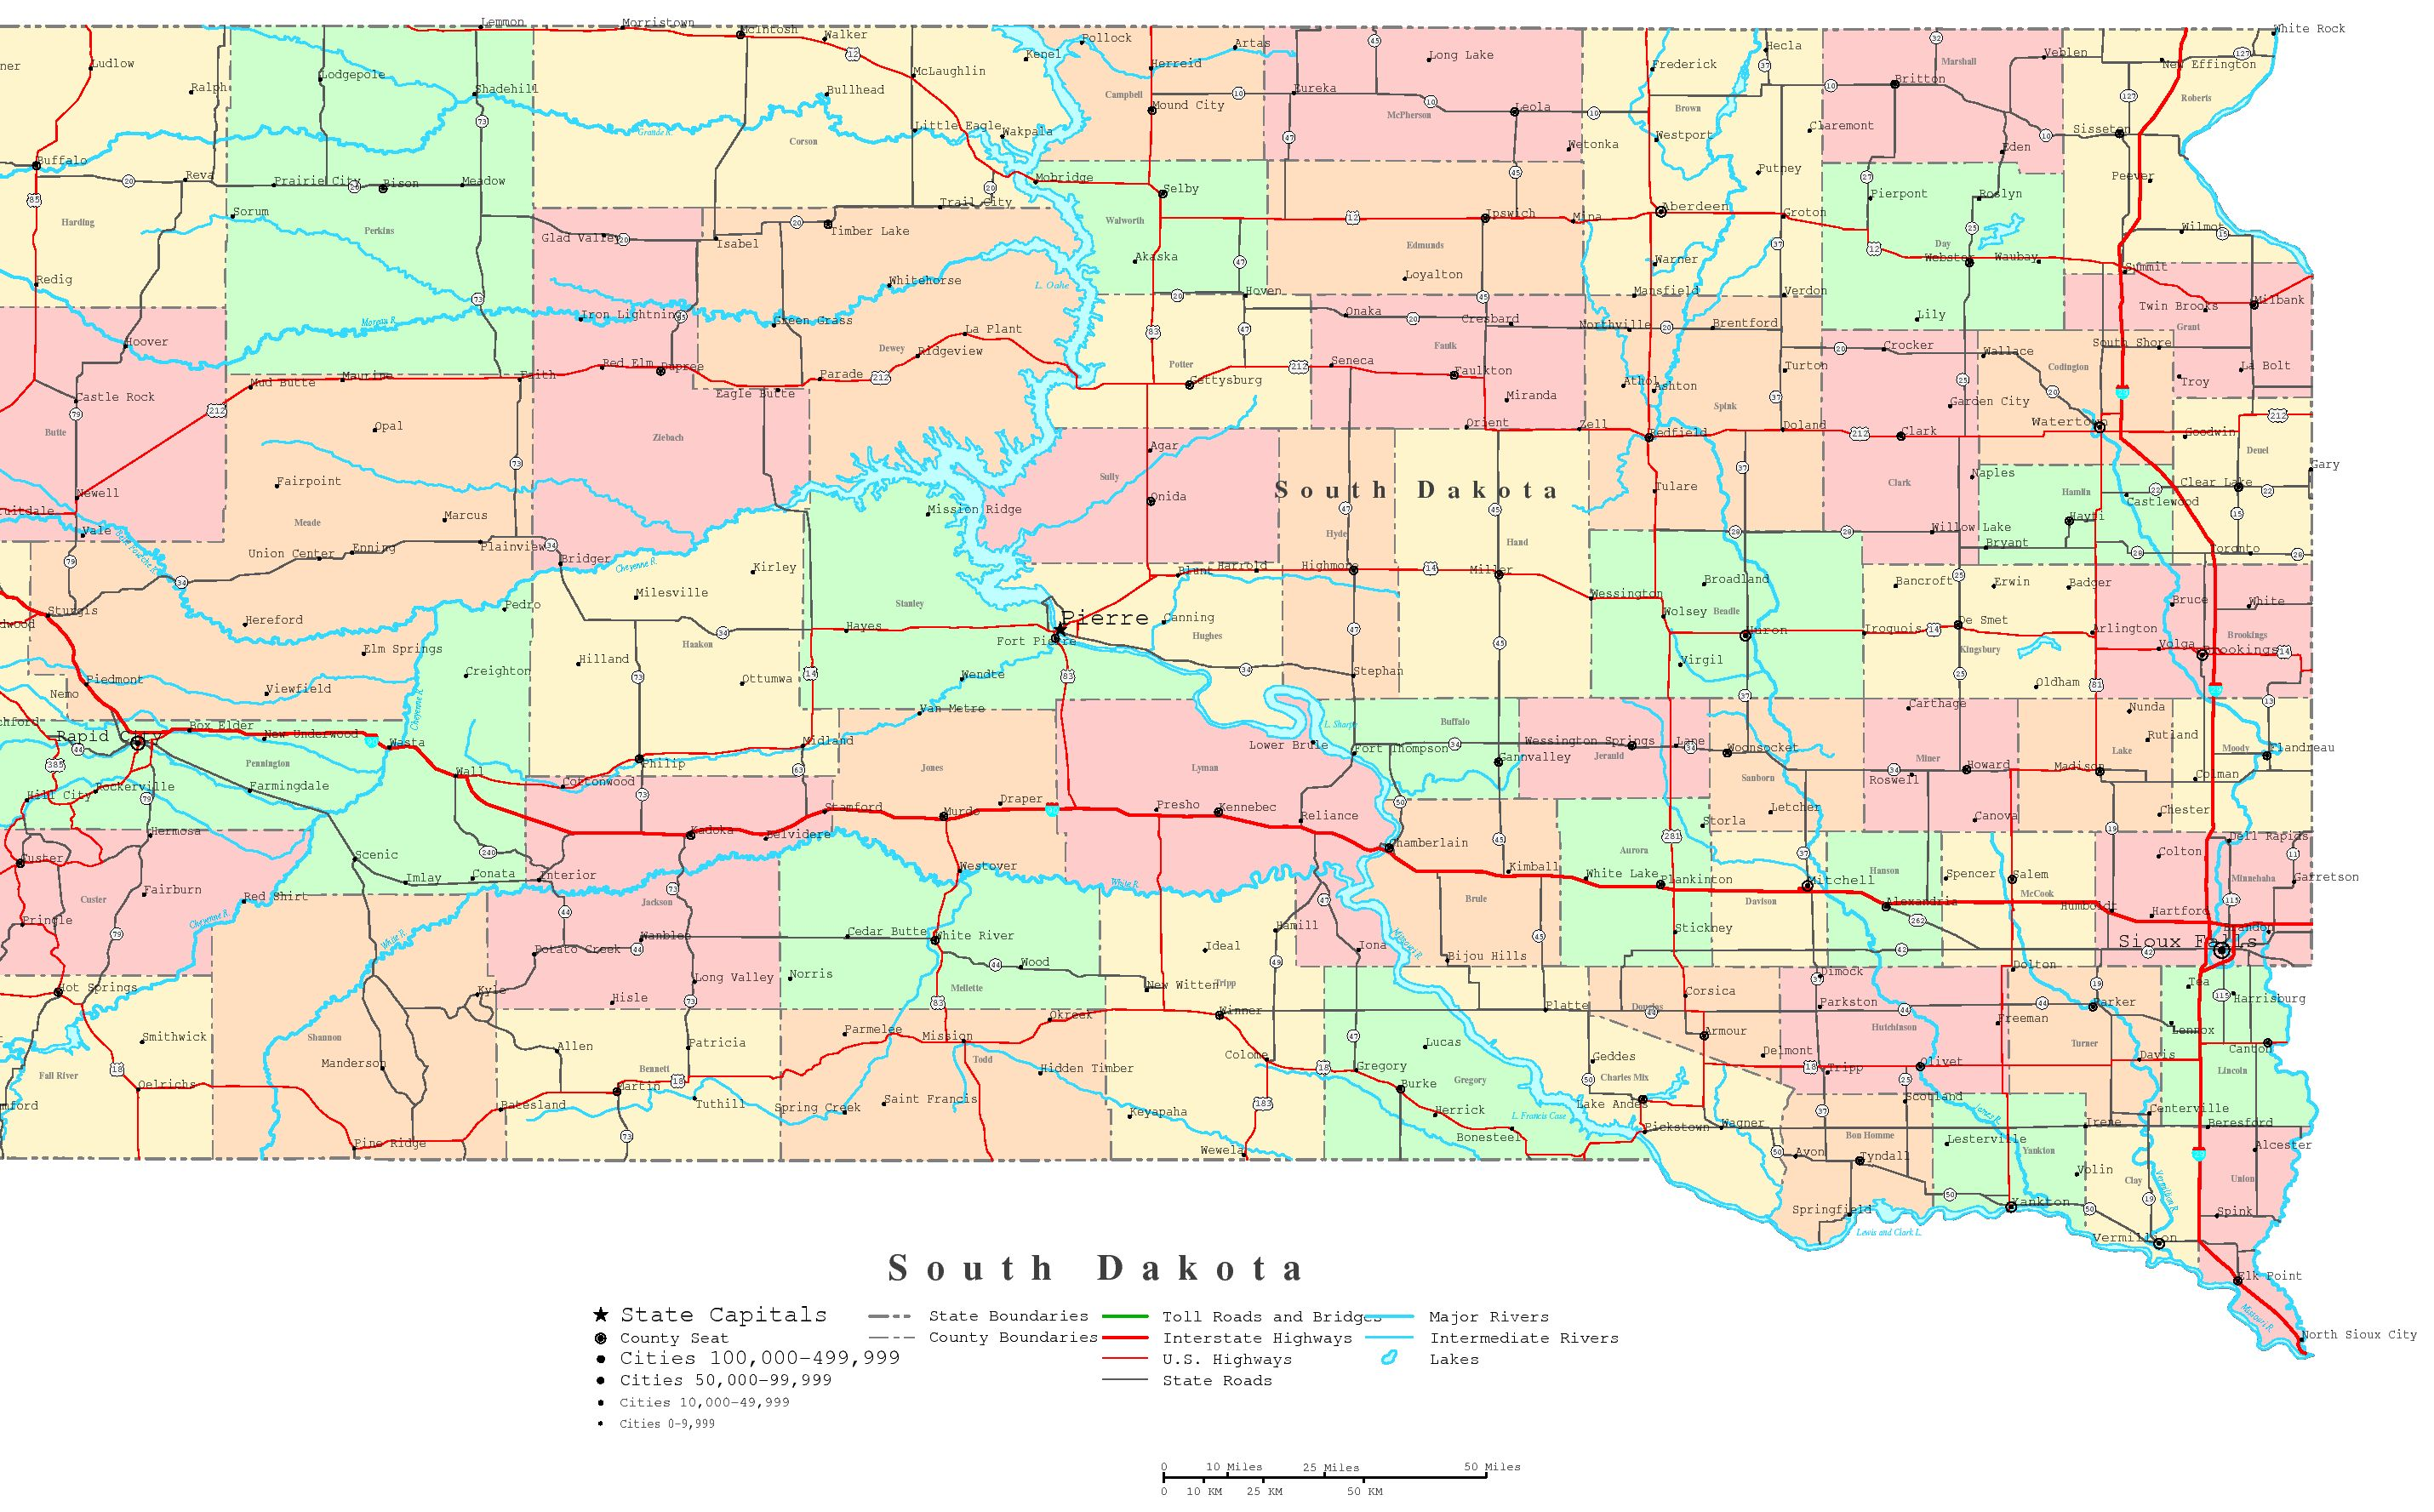 South Dakota Printable Map - South dakota on the us map